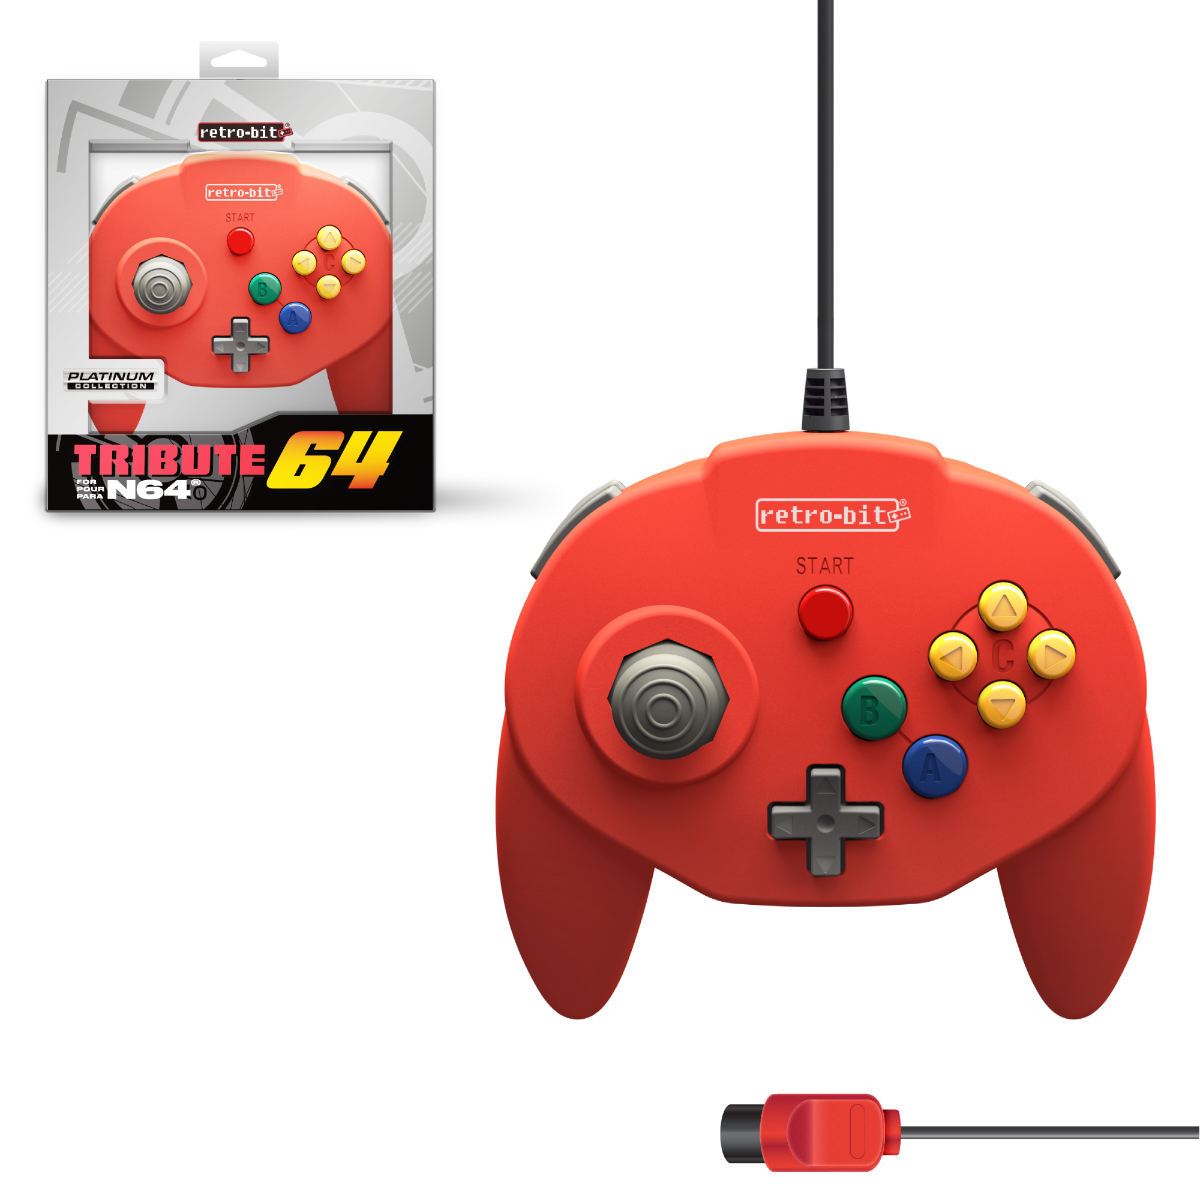 Tribute64, red, N64, nintendo 64, tribute